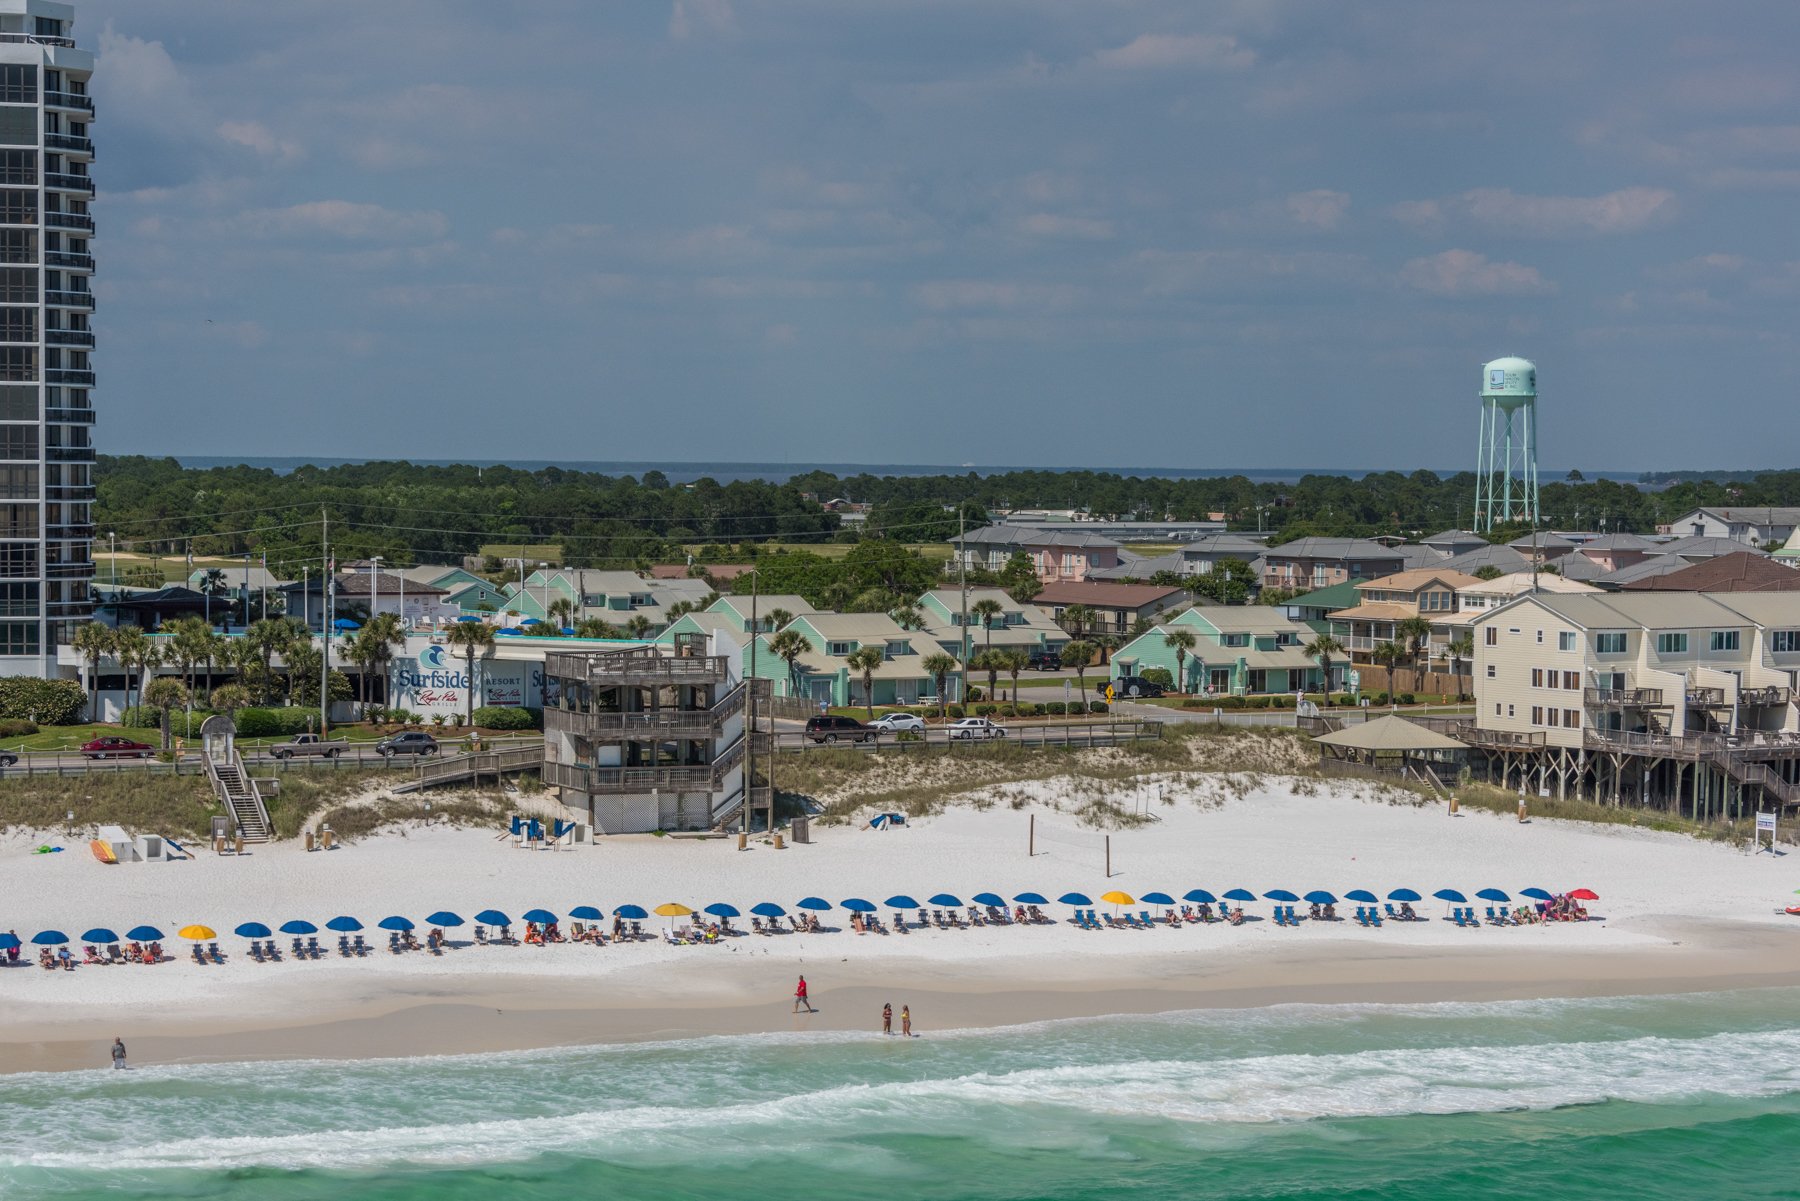 Destin-FourMileVillage20150504_804.jpg